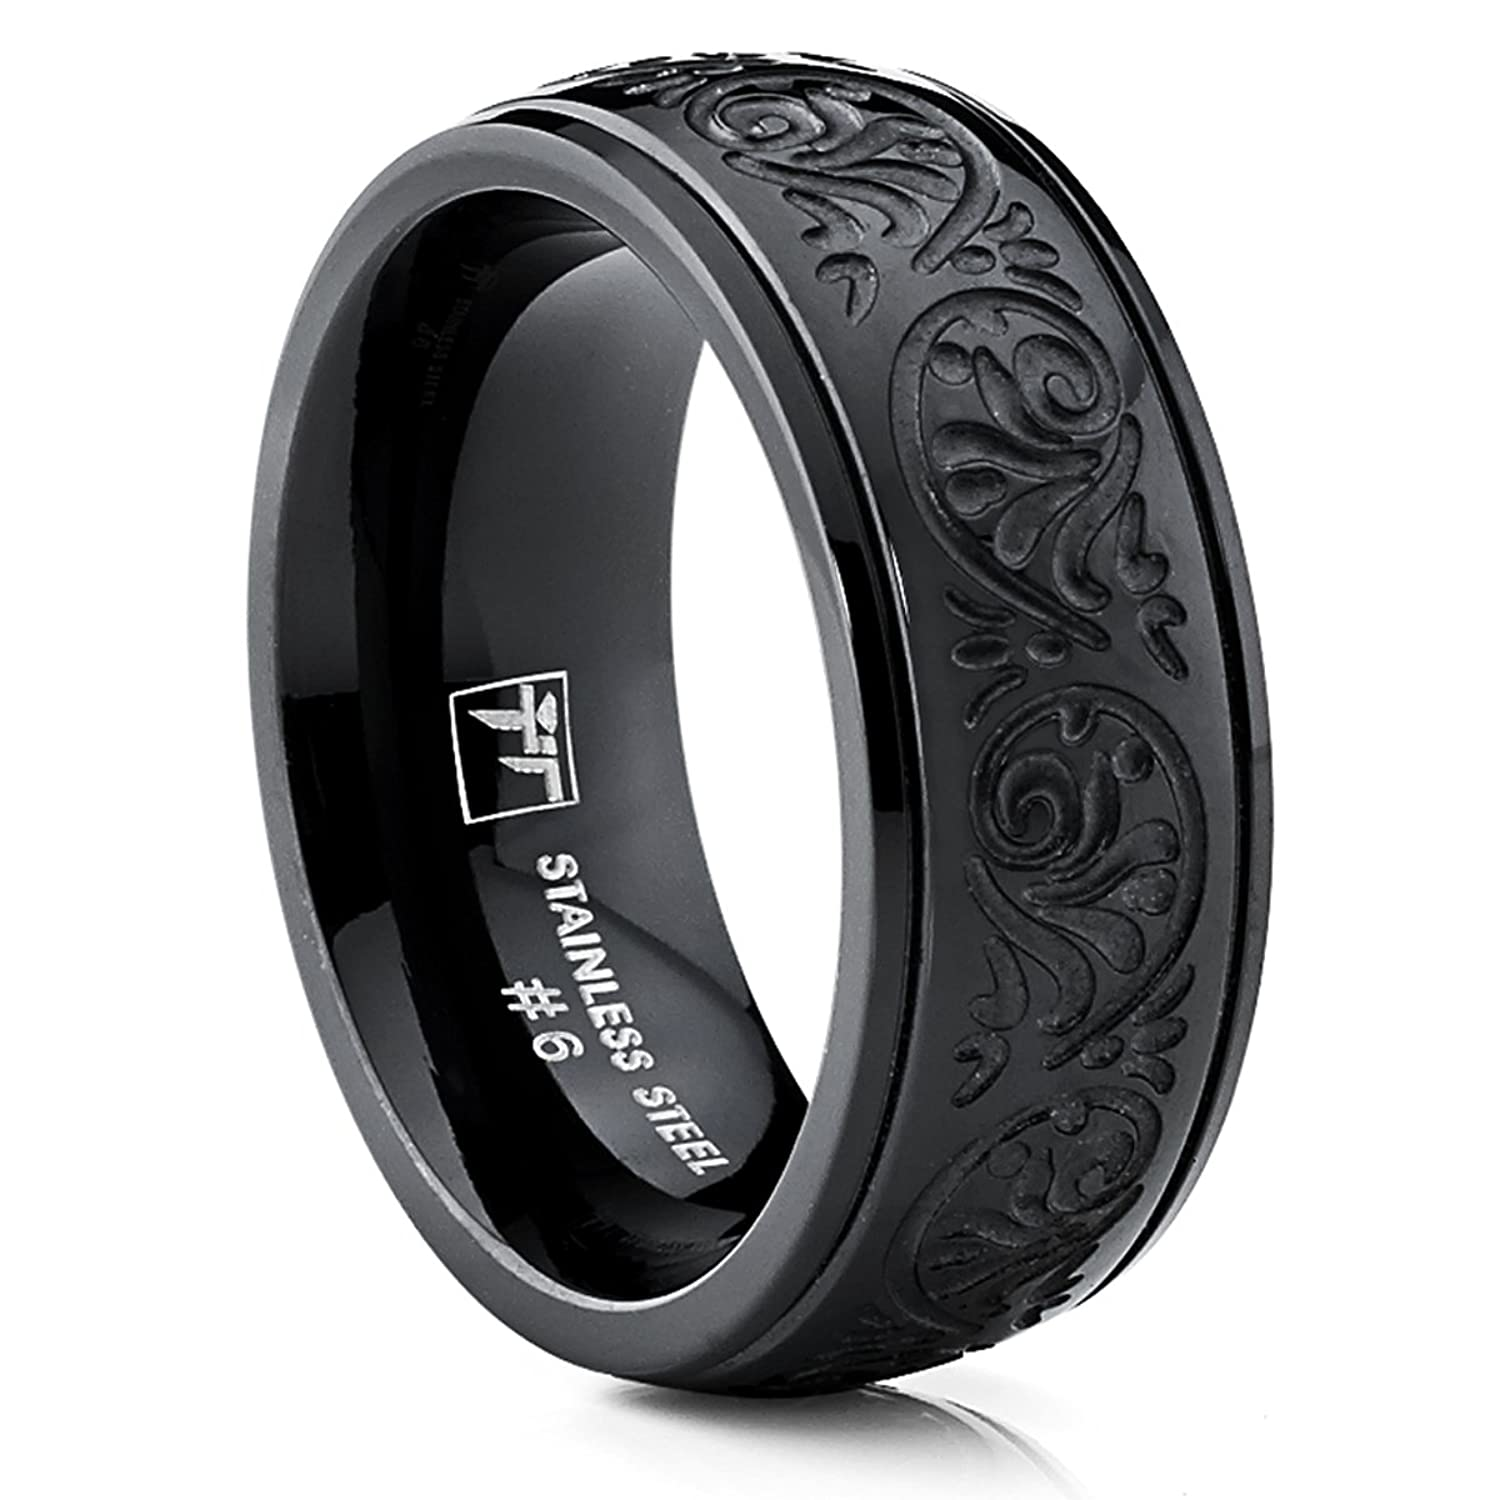 Amazon 7MM BLACK Stainless Steel Ring With Engraved